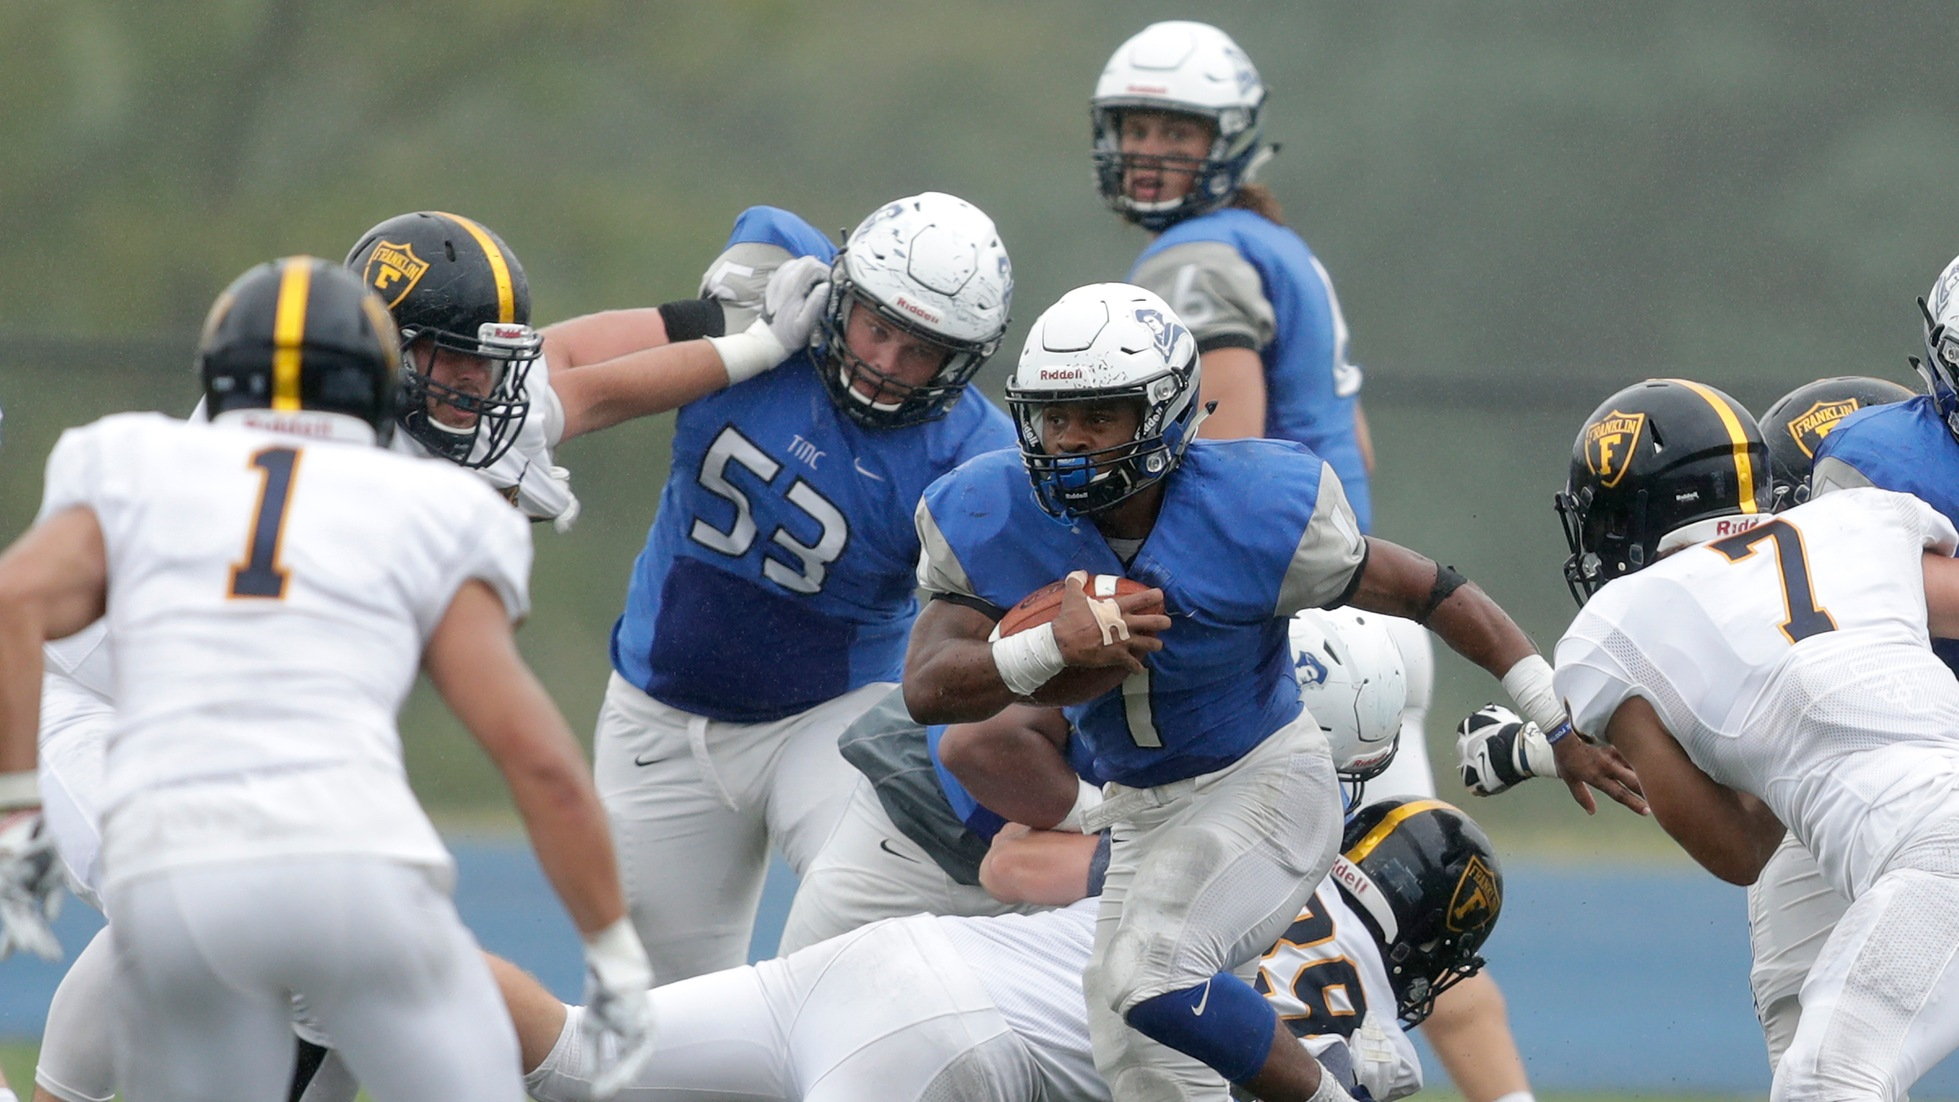 Thomas More Falls in Overtime to Westminster